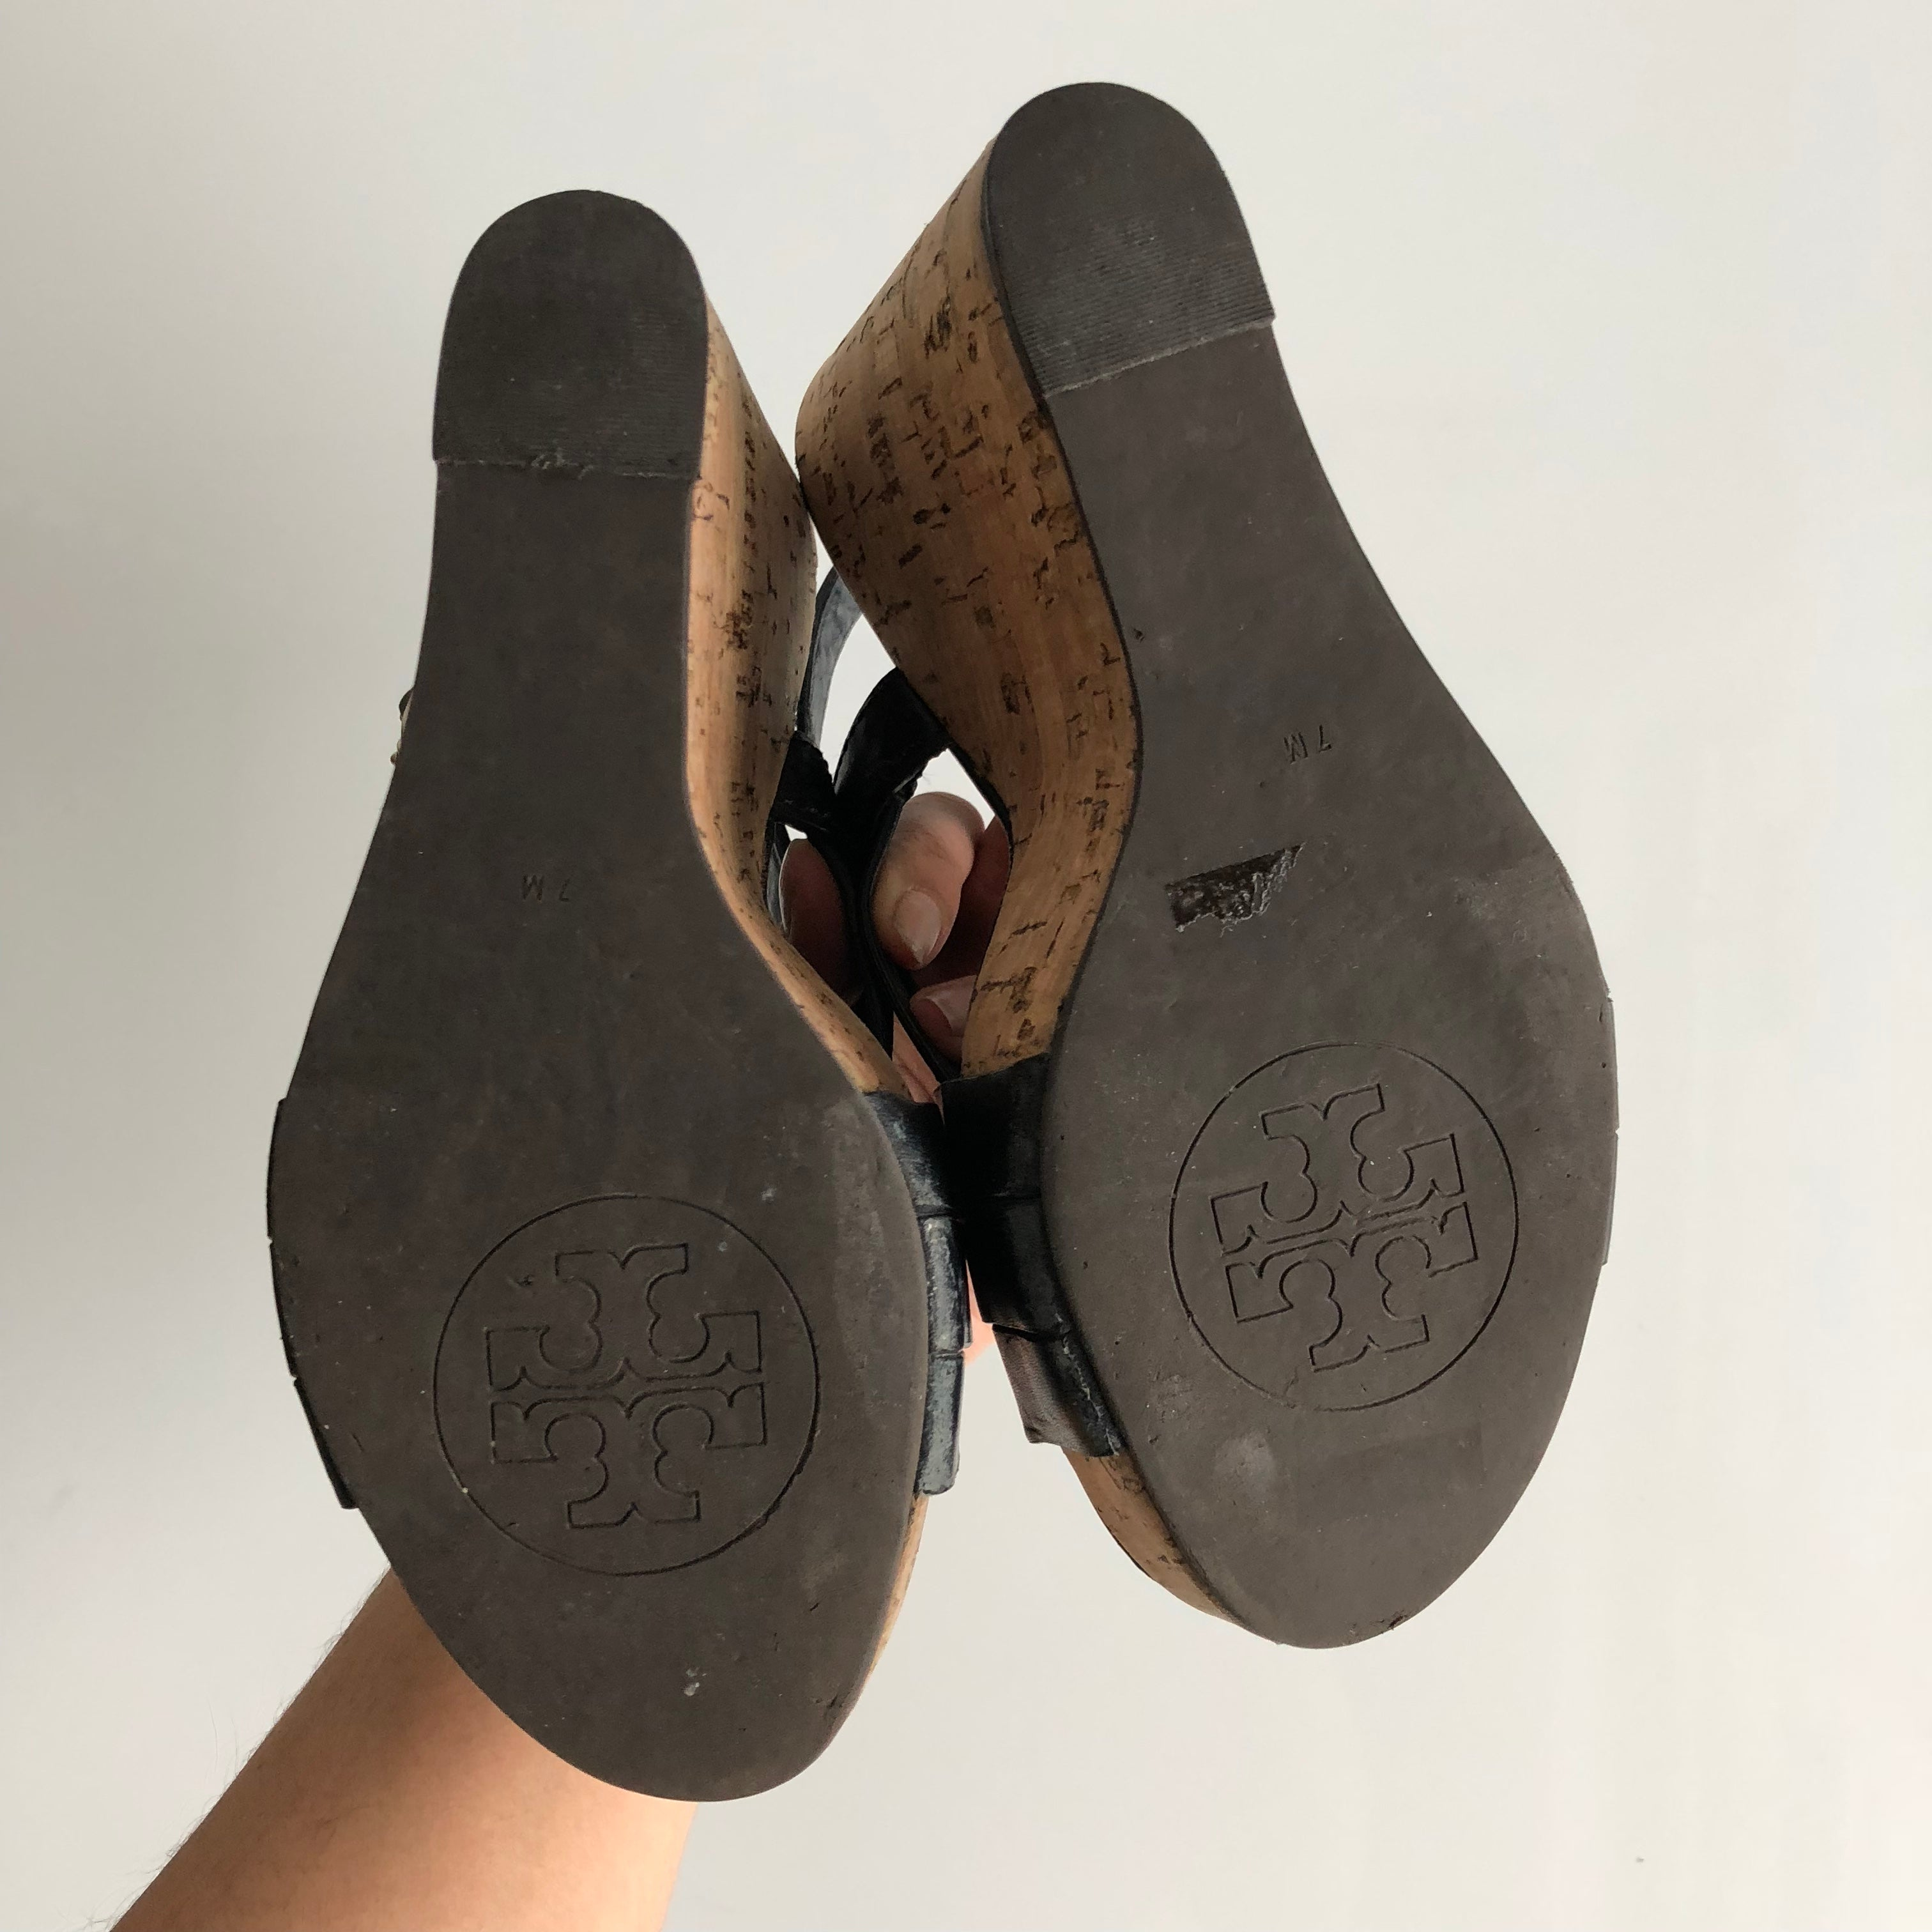 Authentic TORY BURCH Black Leather Wedges Size 7